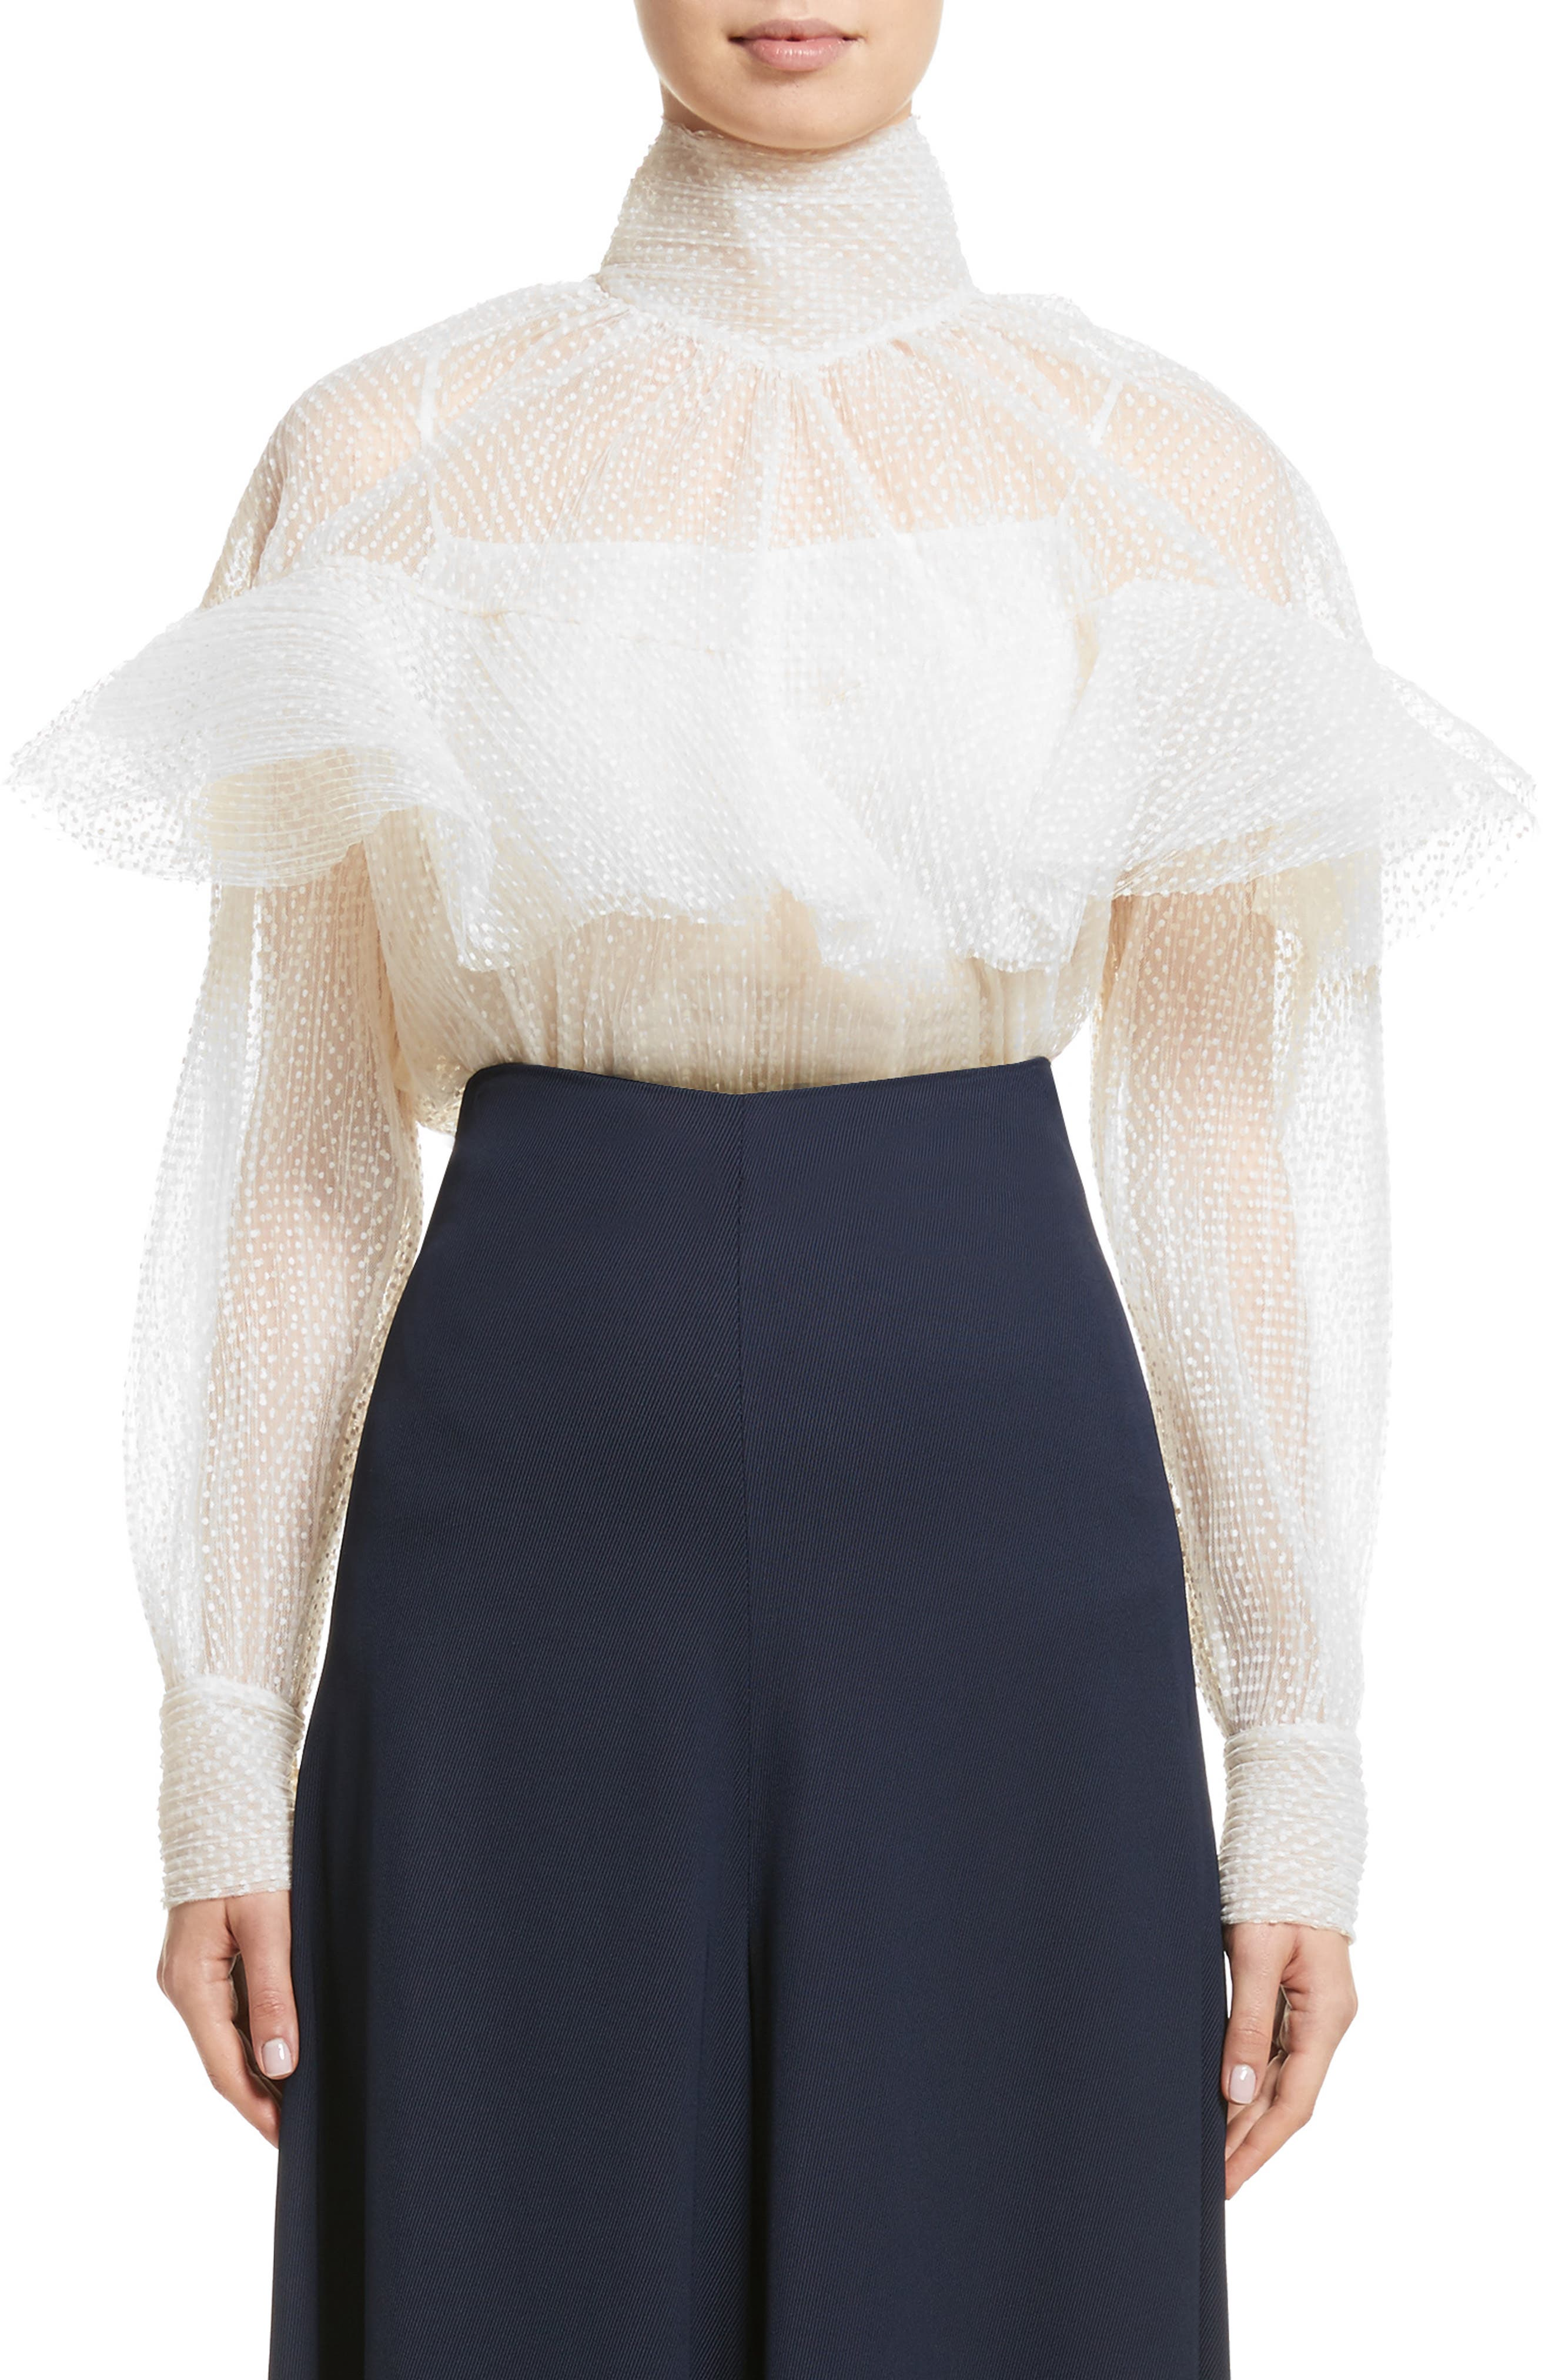 A.W.A.K.E Frill Double Layered Tulle Top,                             Main thumbnail 1, color,                             Cream